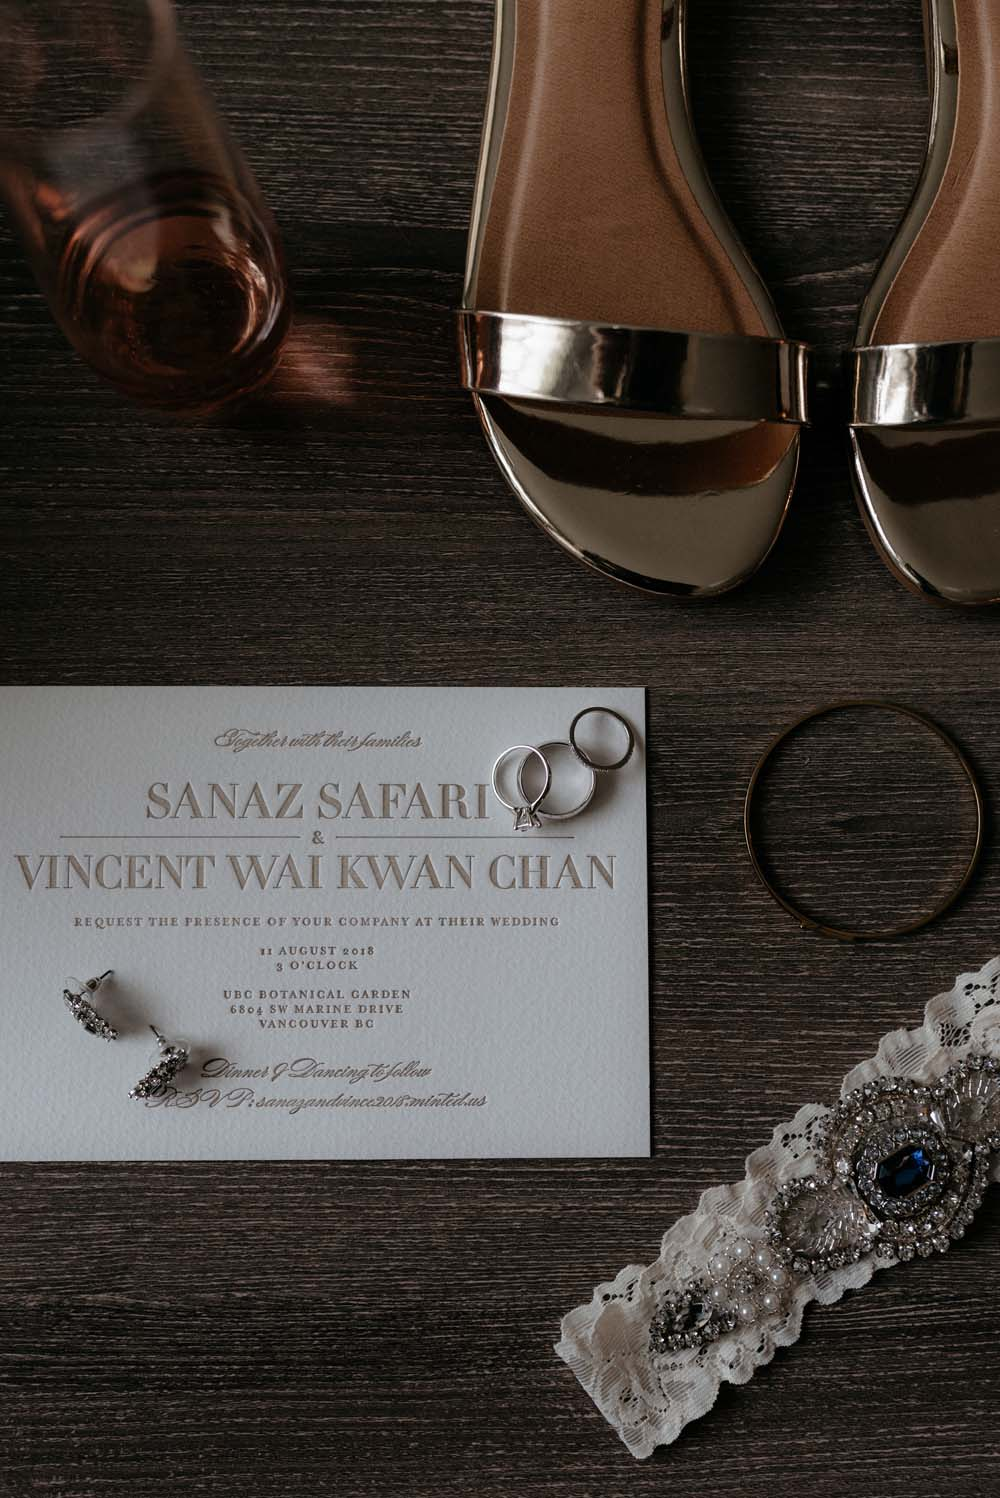 A Multicultural Wedding At The UBC Botanical Garden in Vancouver - invitation